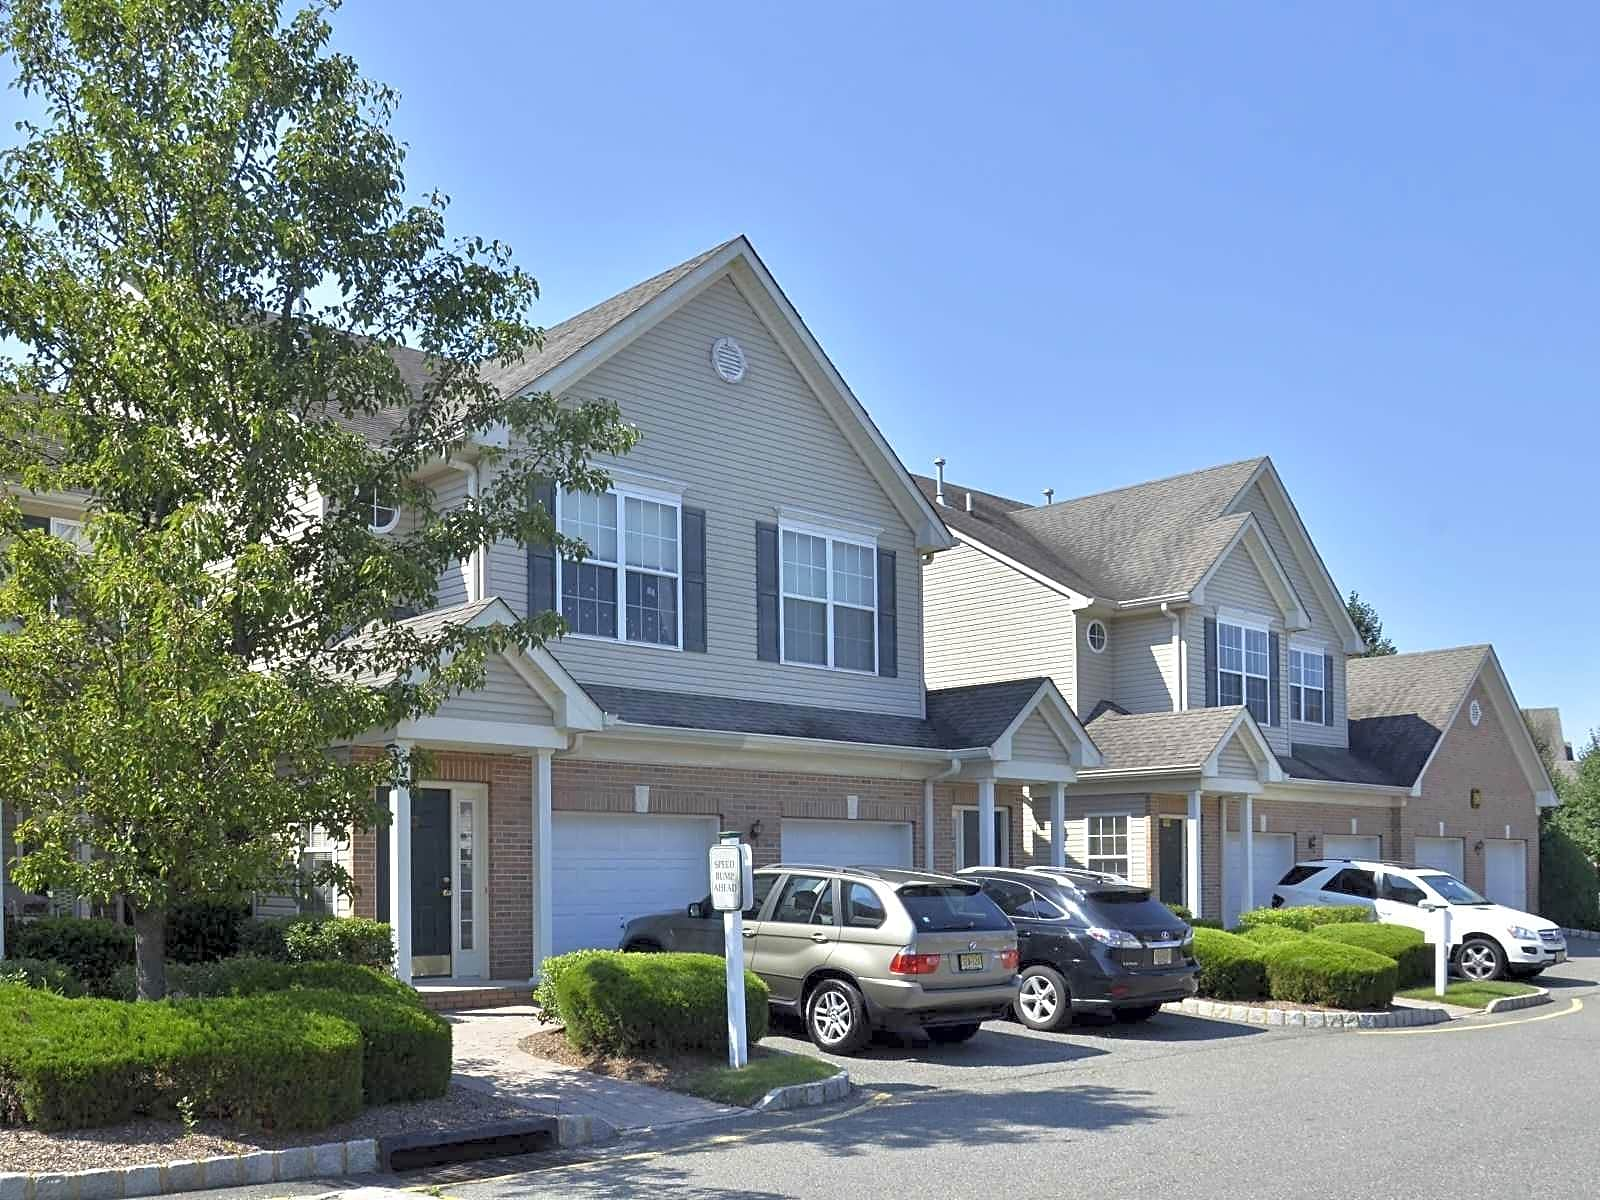 Apartments Near Drew Riverbend at Florham Park for Drew University Students in Madison, NJ